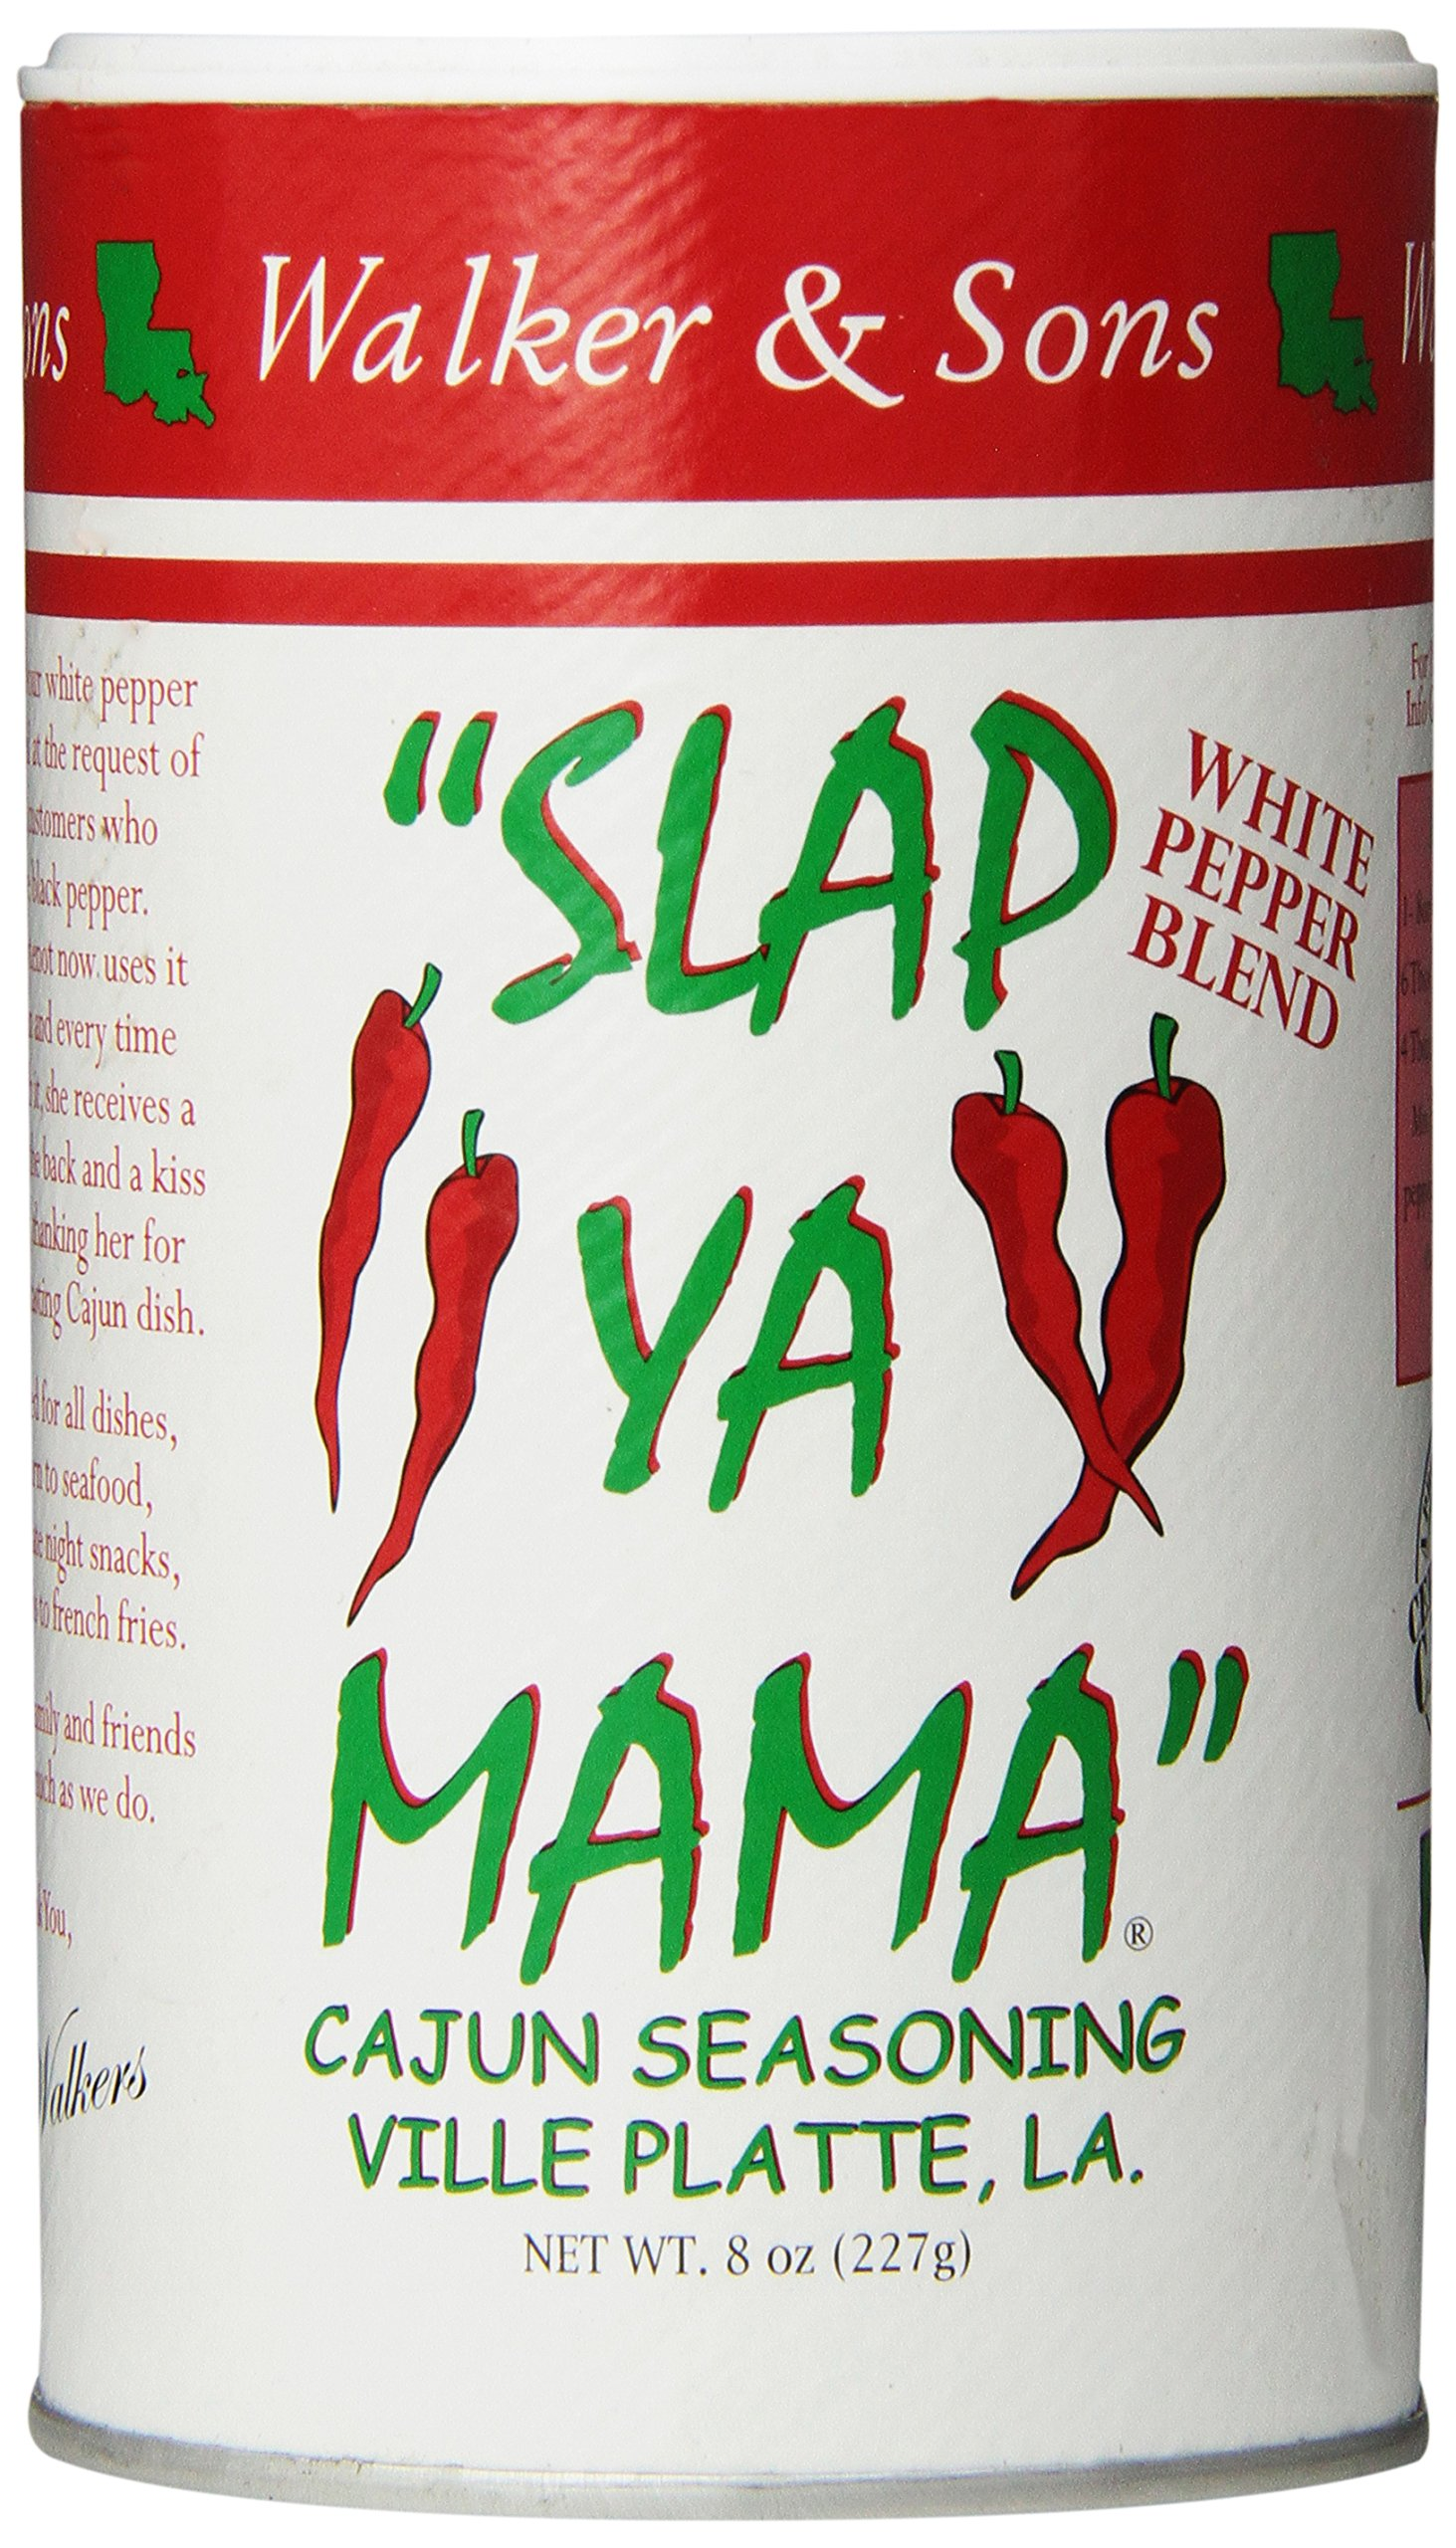 One 8 oz Slap Ya Mama Cajun Seasoning White Pepper Blend